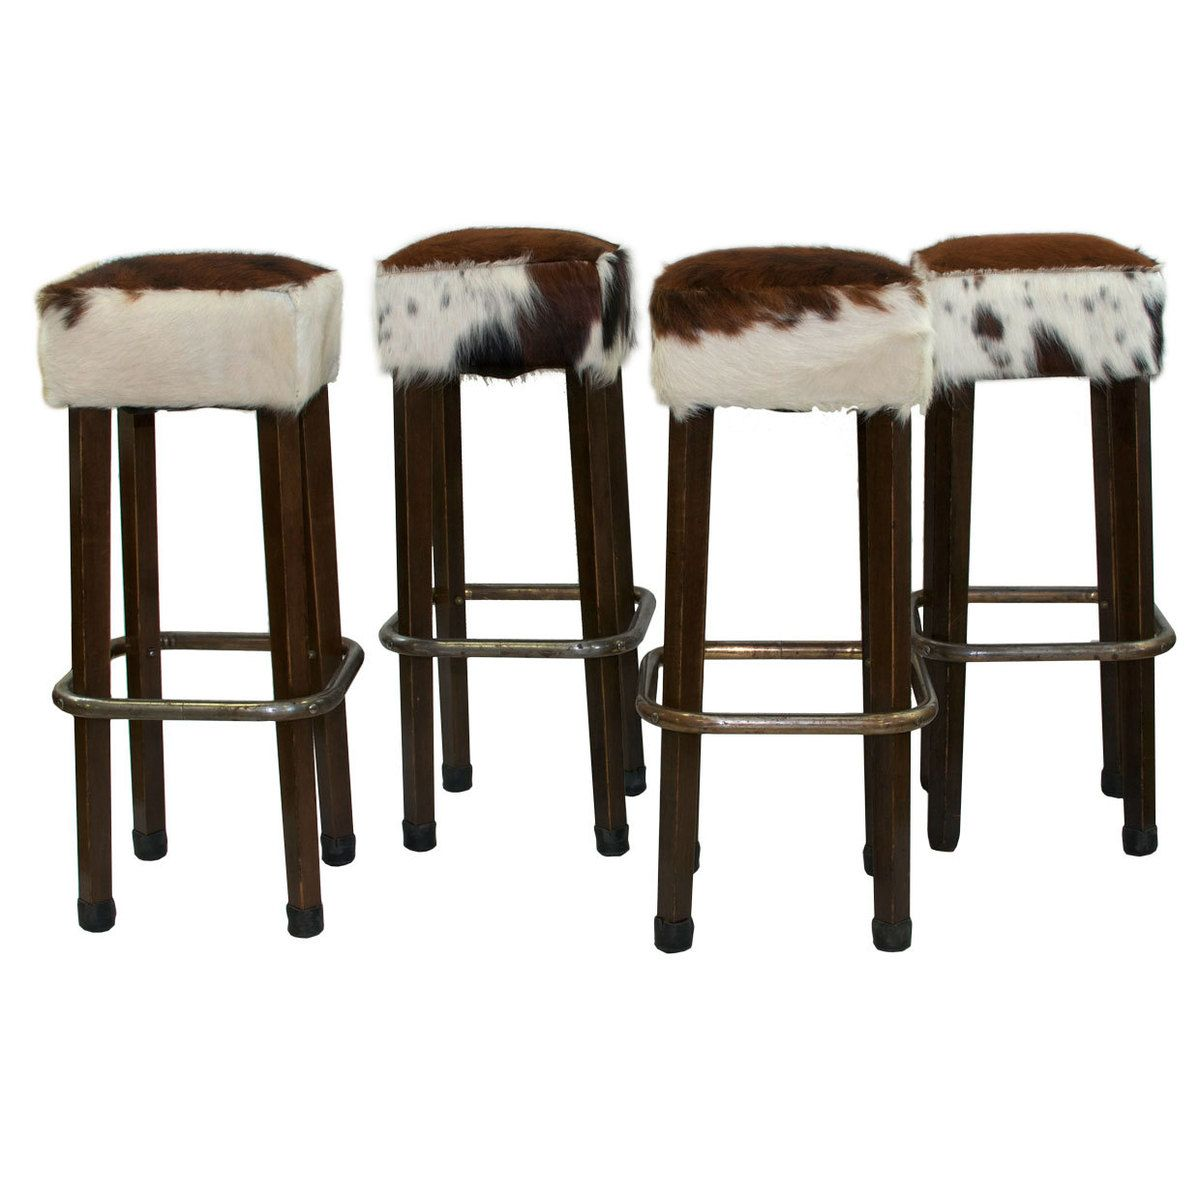 Rustikale Küchenstühle Cowhide Bar Stools Set Of 4 By Tiger Lily 39s Ideen Shop